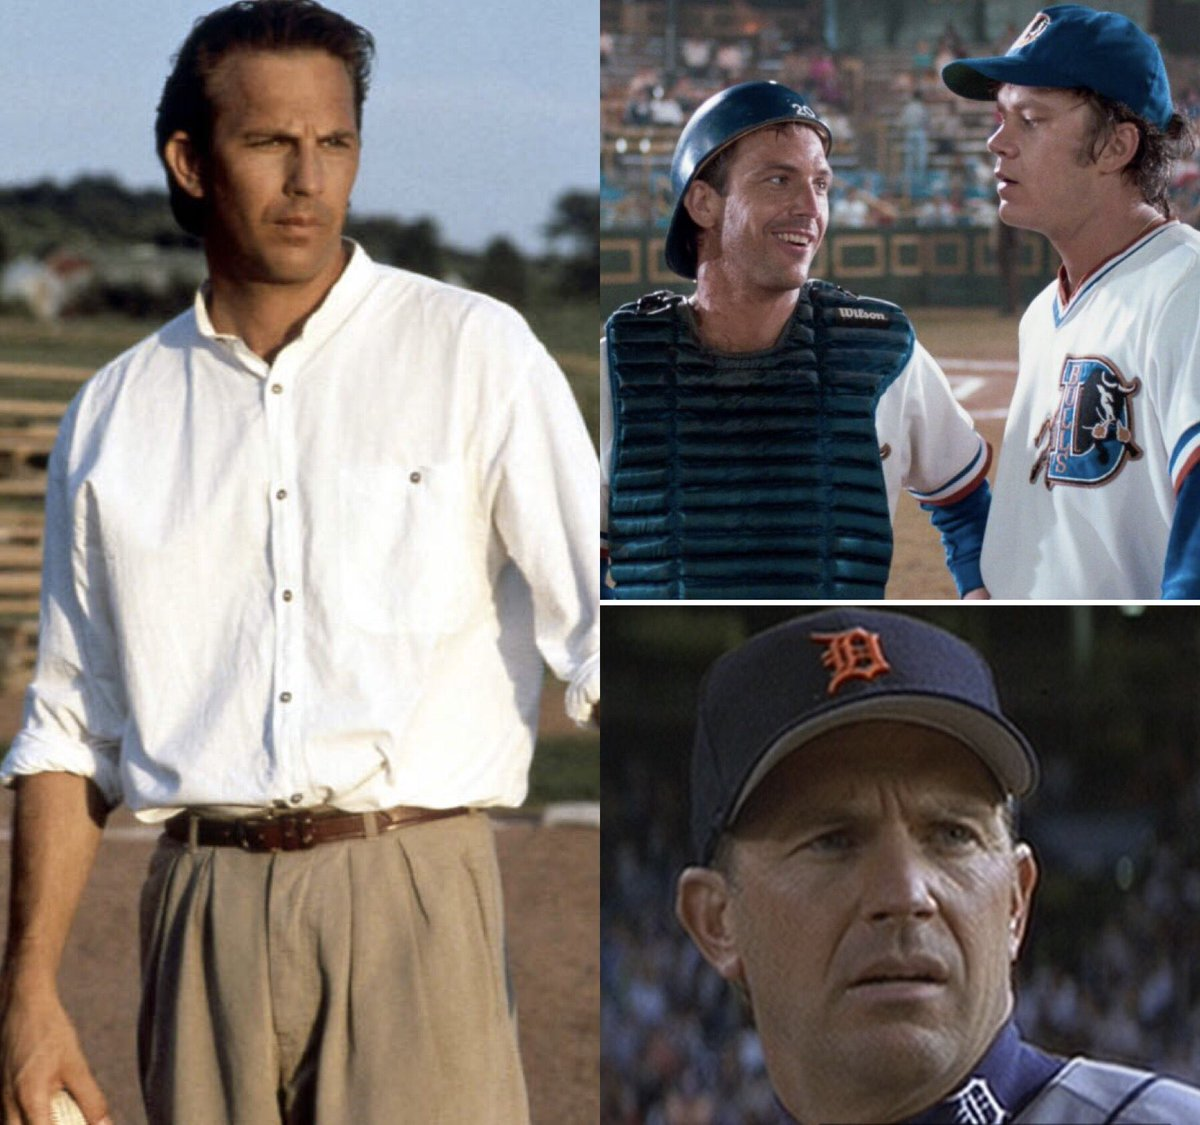 On Kevin Costner's 66th birthday, you can only save one of his baseball movies. Which one do you save? Please quote